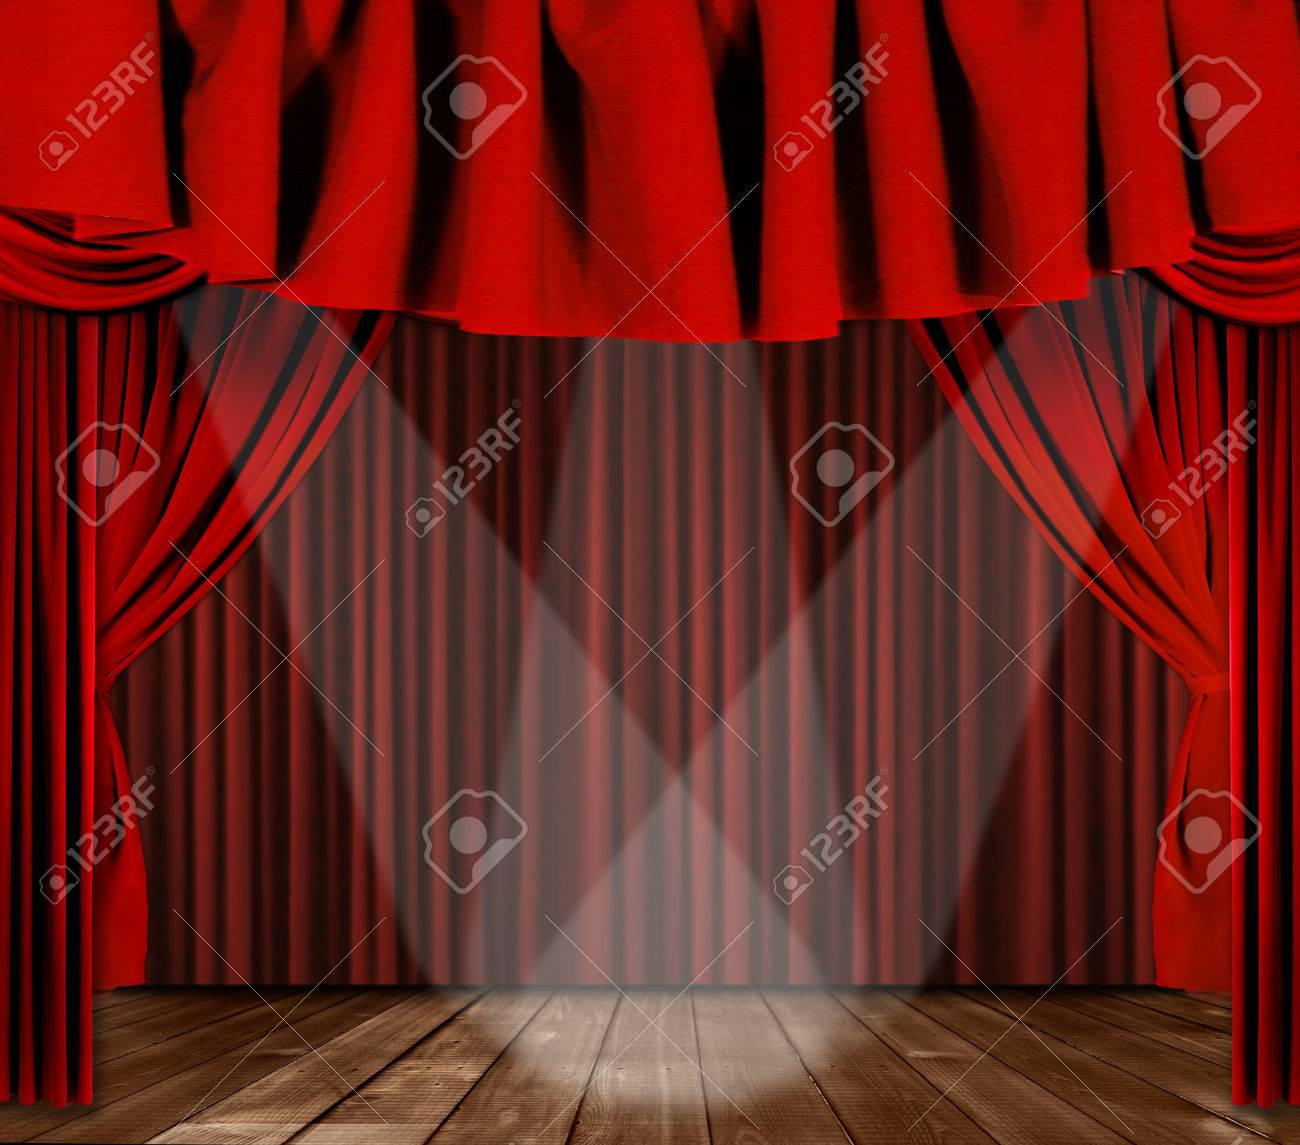 Black theatre curtain - Red Horozontal Draped Theatre Curtains On Black With 3 Spotlights Stock Photo 1482679